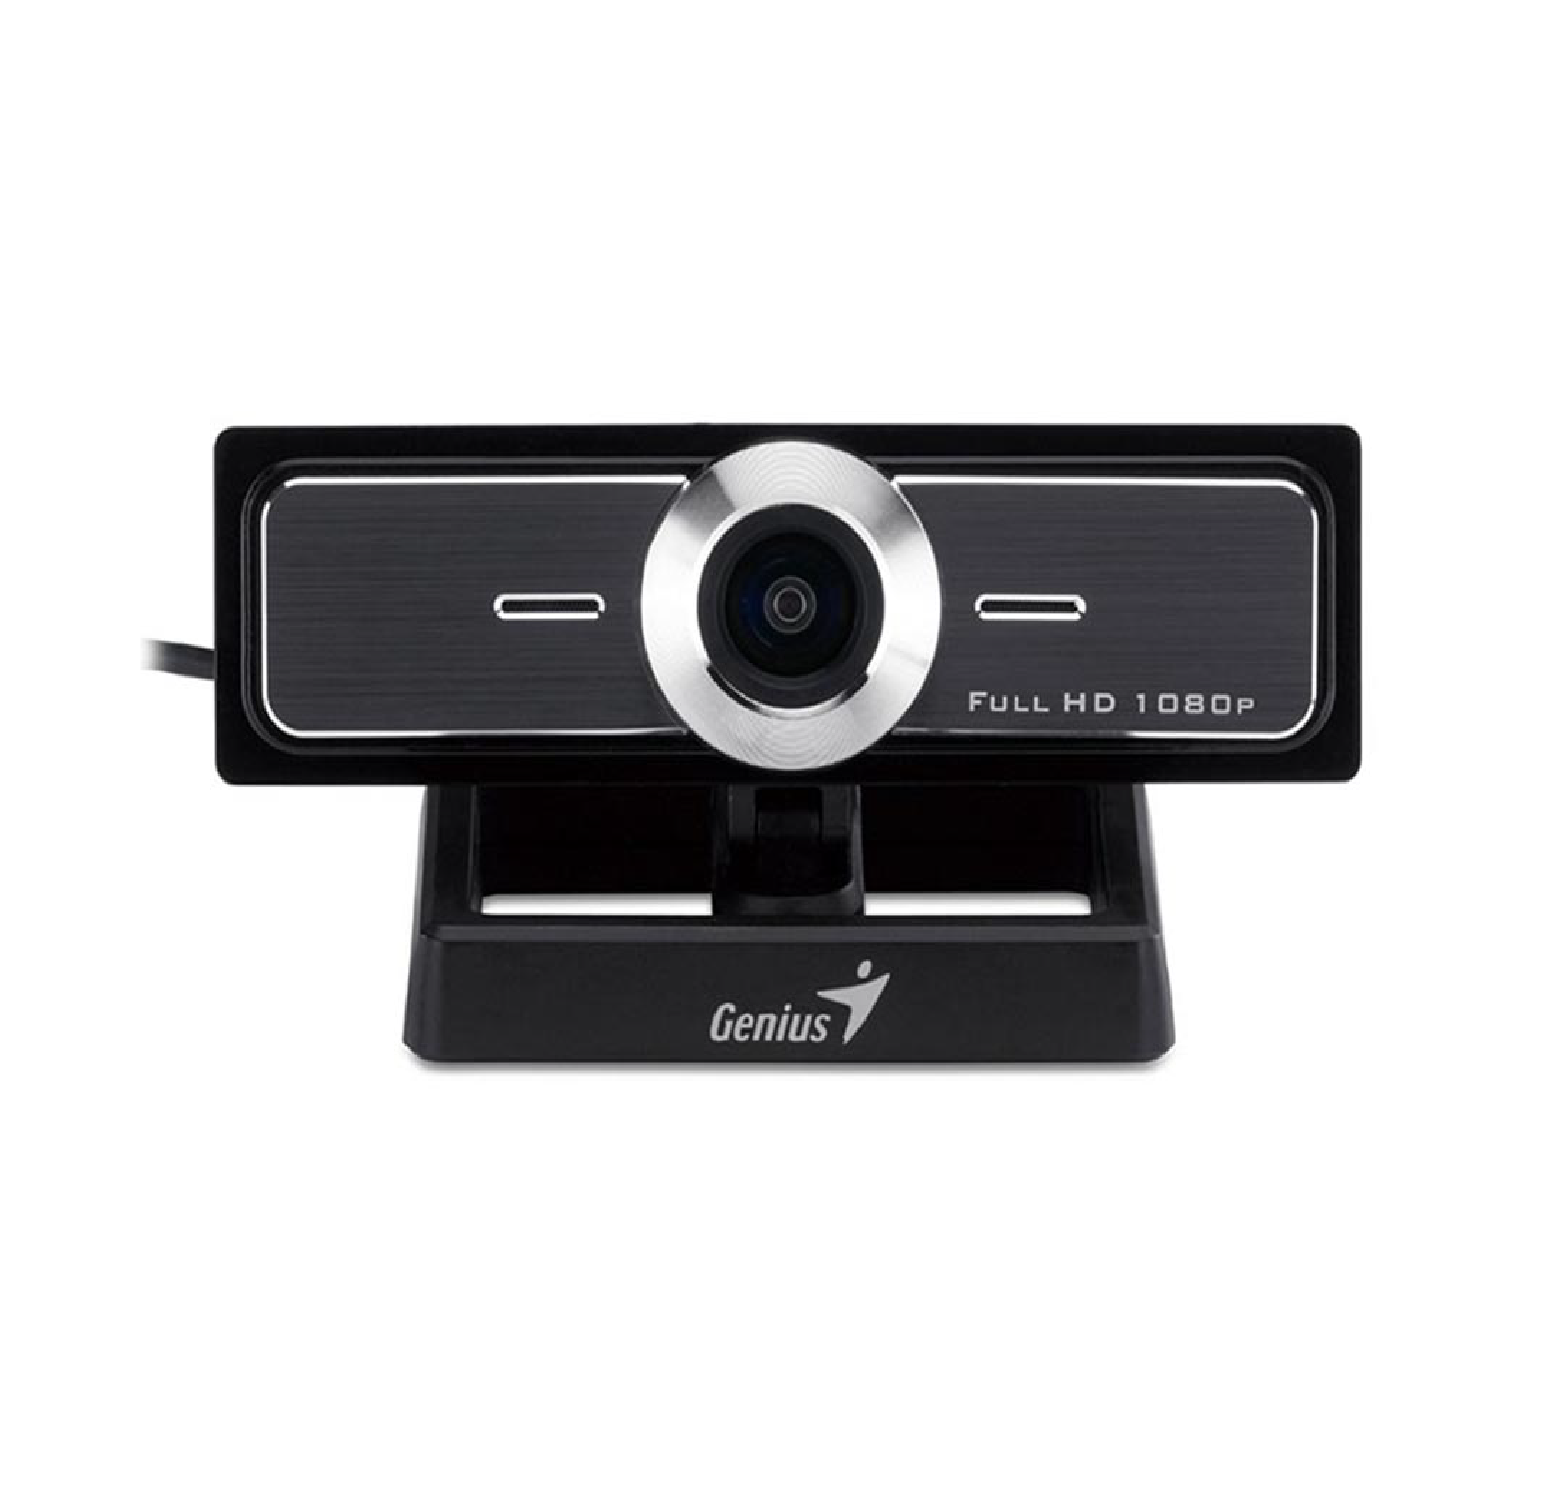 main images وب کم جنیوس مدل واید کم F100 Genius WideCam F100 Ultra Wide Angle FHD Webcam